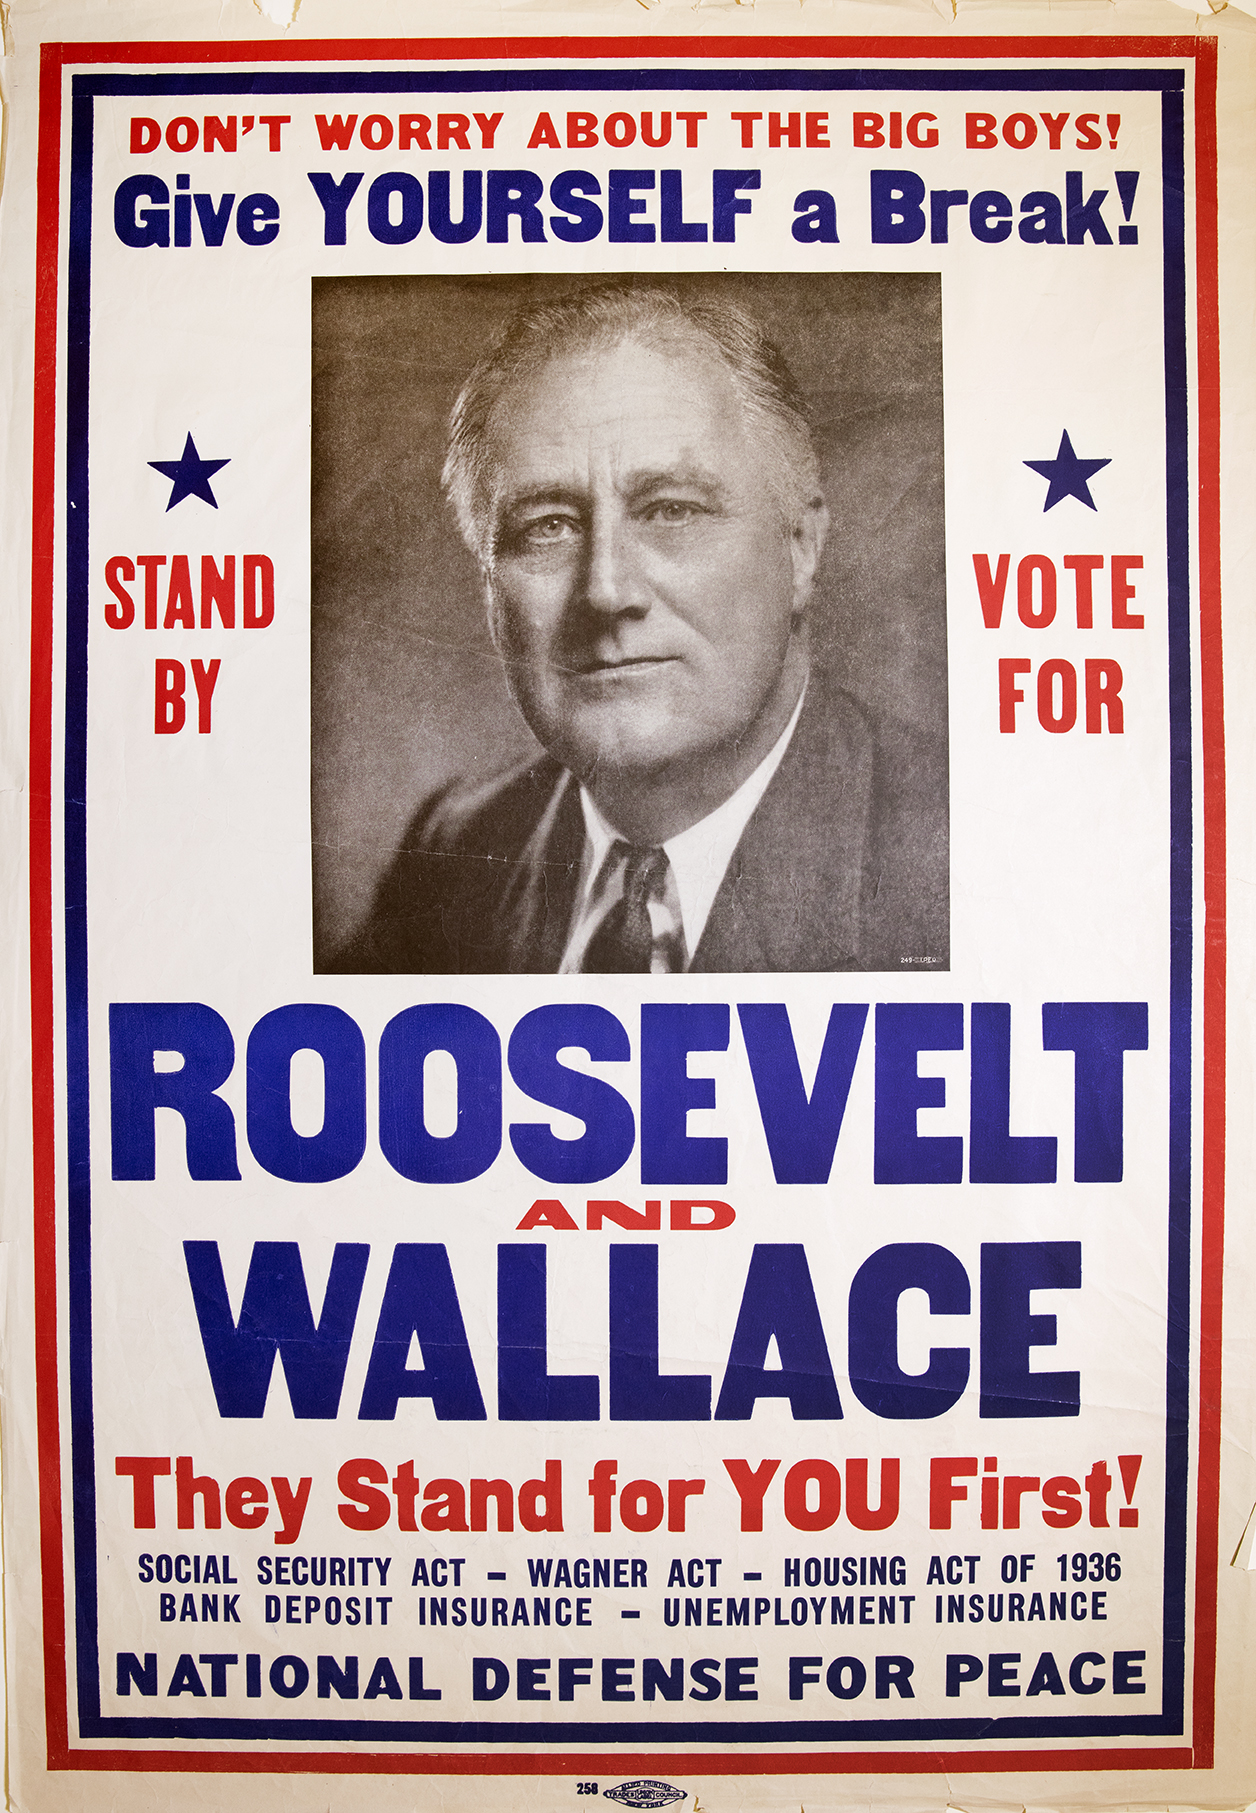 Roosevelt and Wallace. 1940. (FDRL)